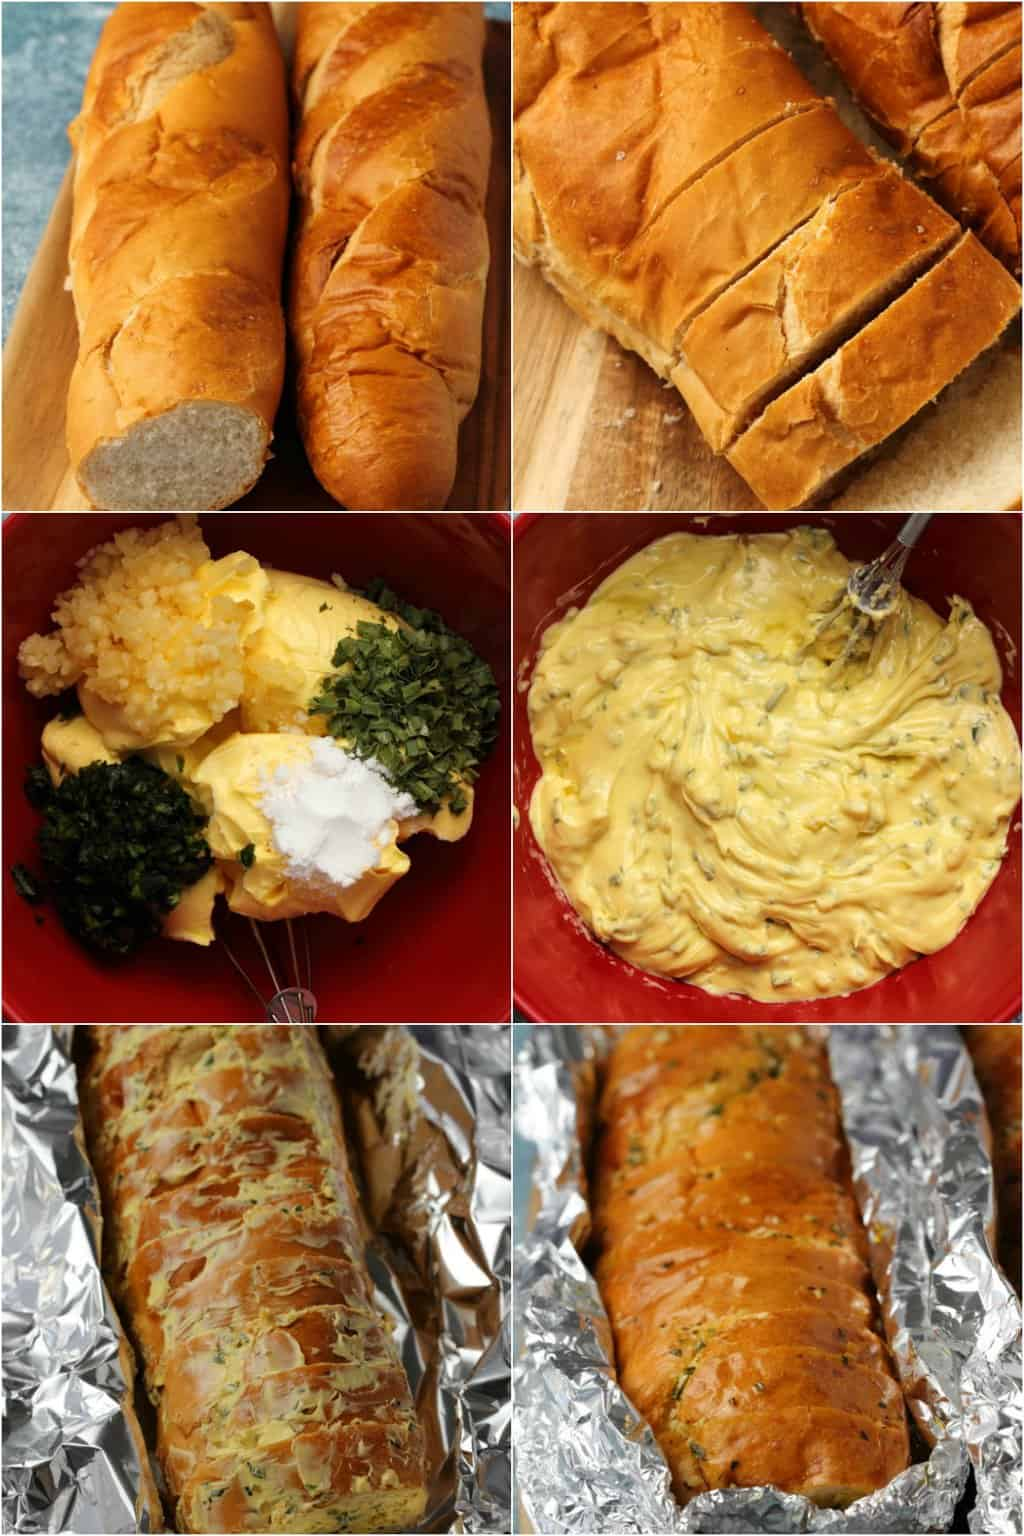 Step by step process photo collage of making vegan garlic bread.